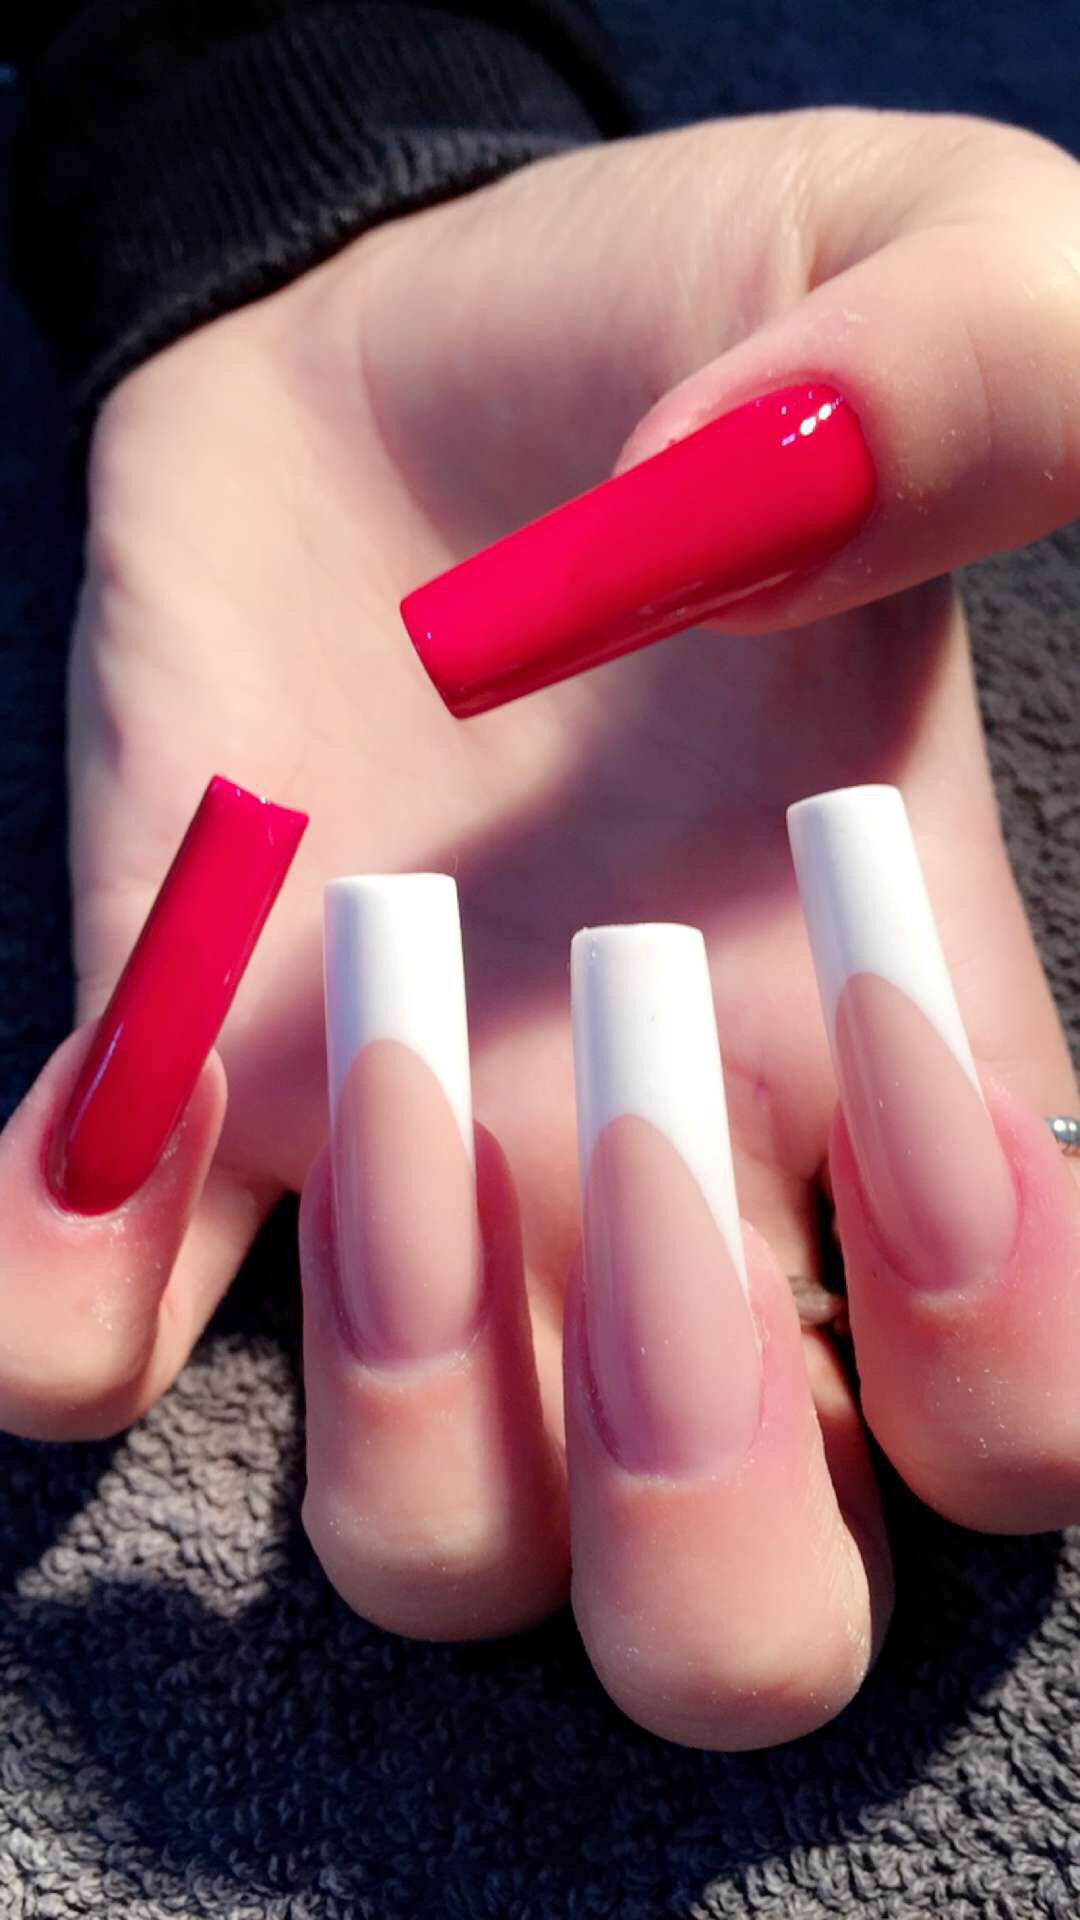 Pin by lpdr on Nails !!! | Pinterest | Long fingernails, Exotic hair ...